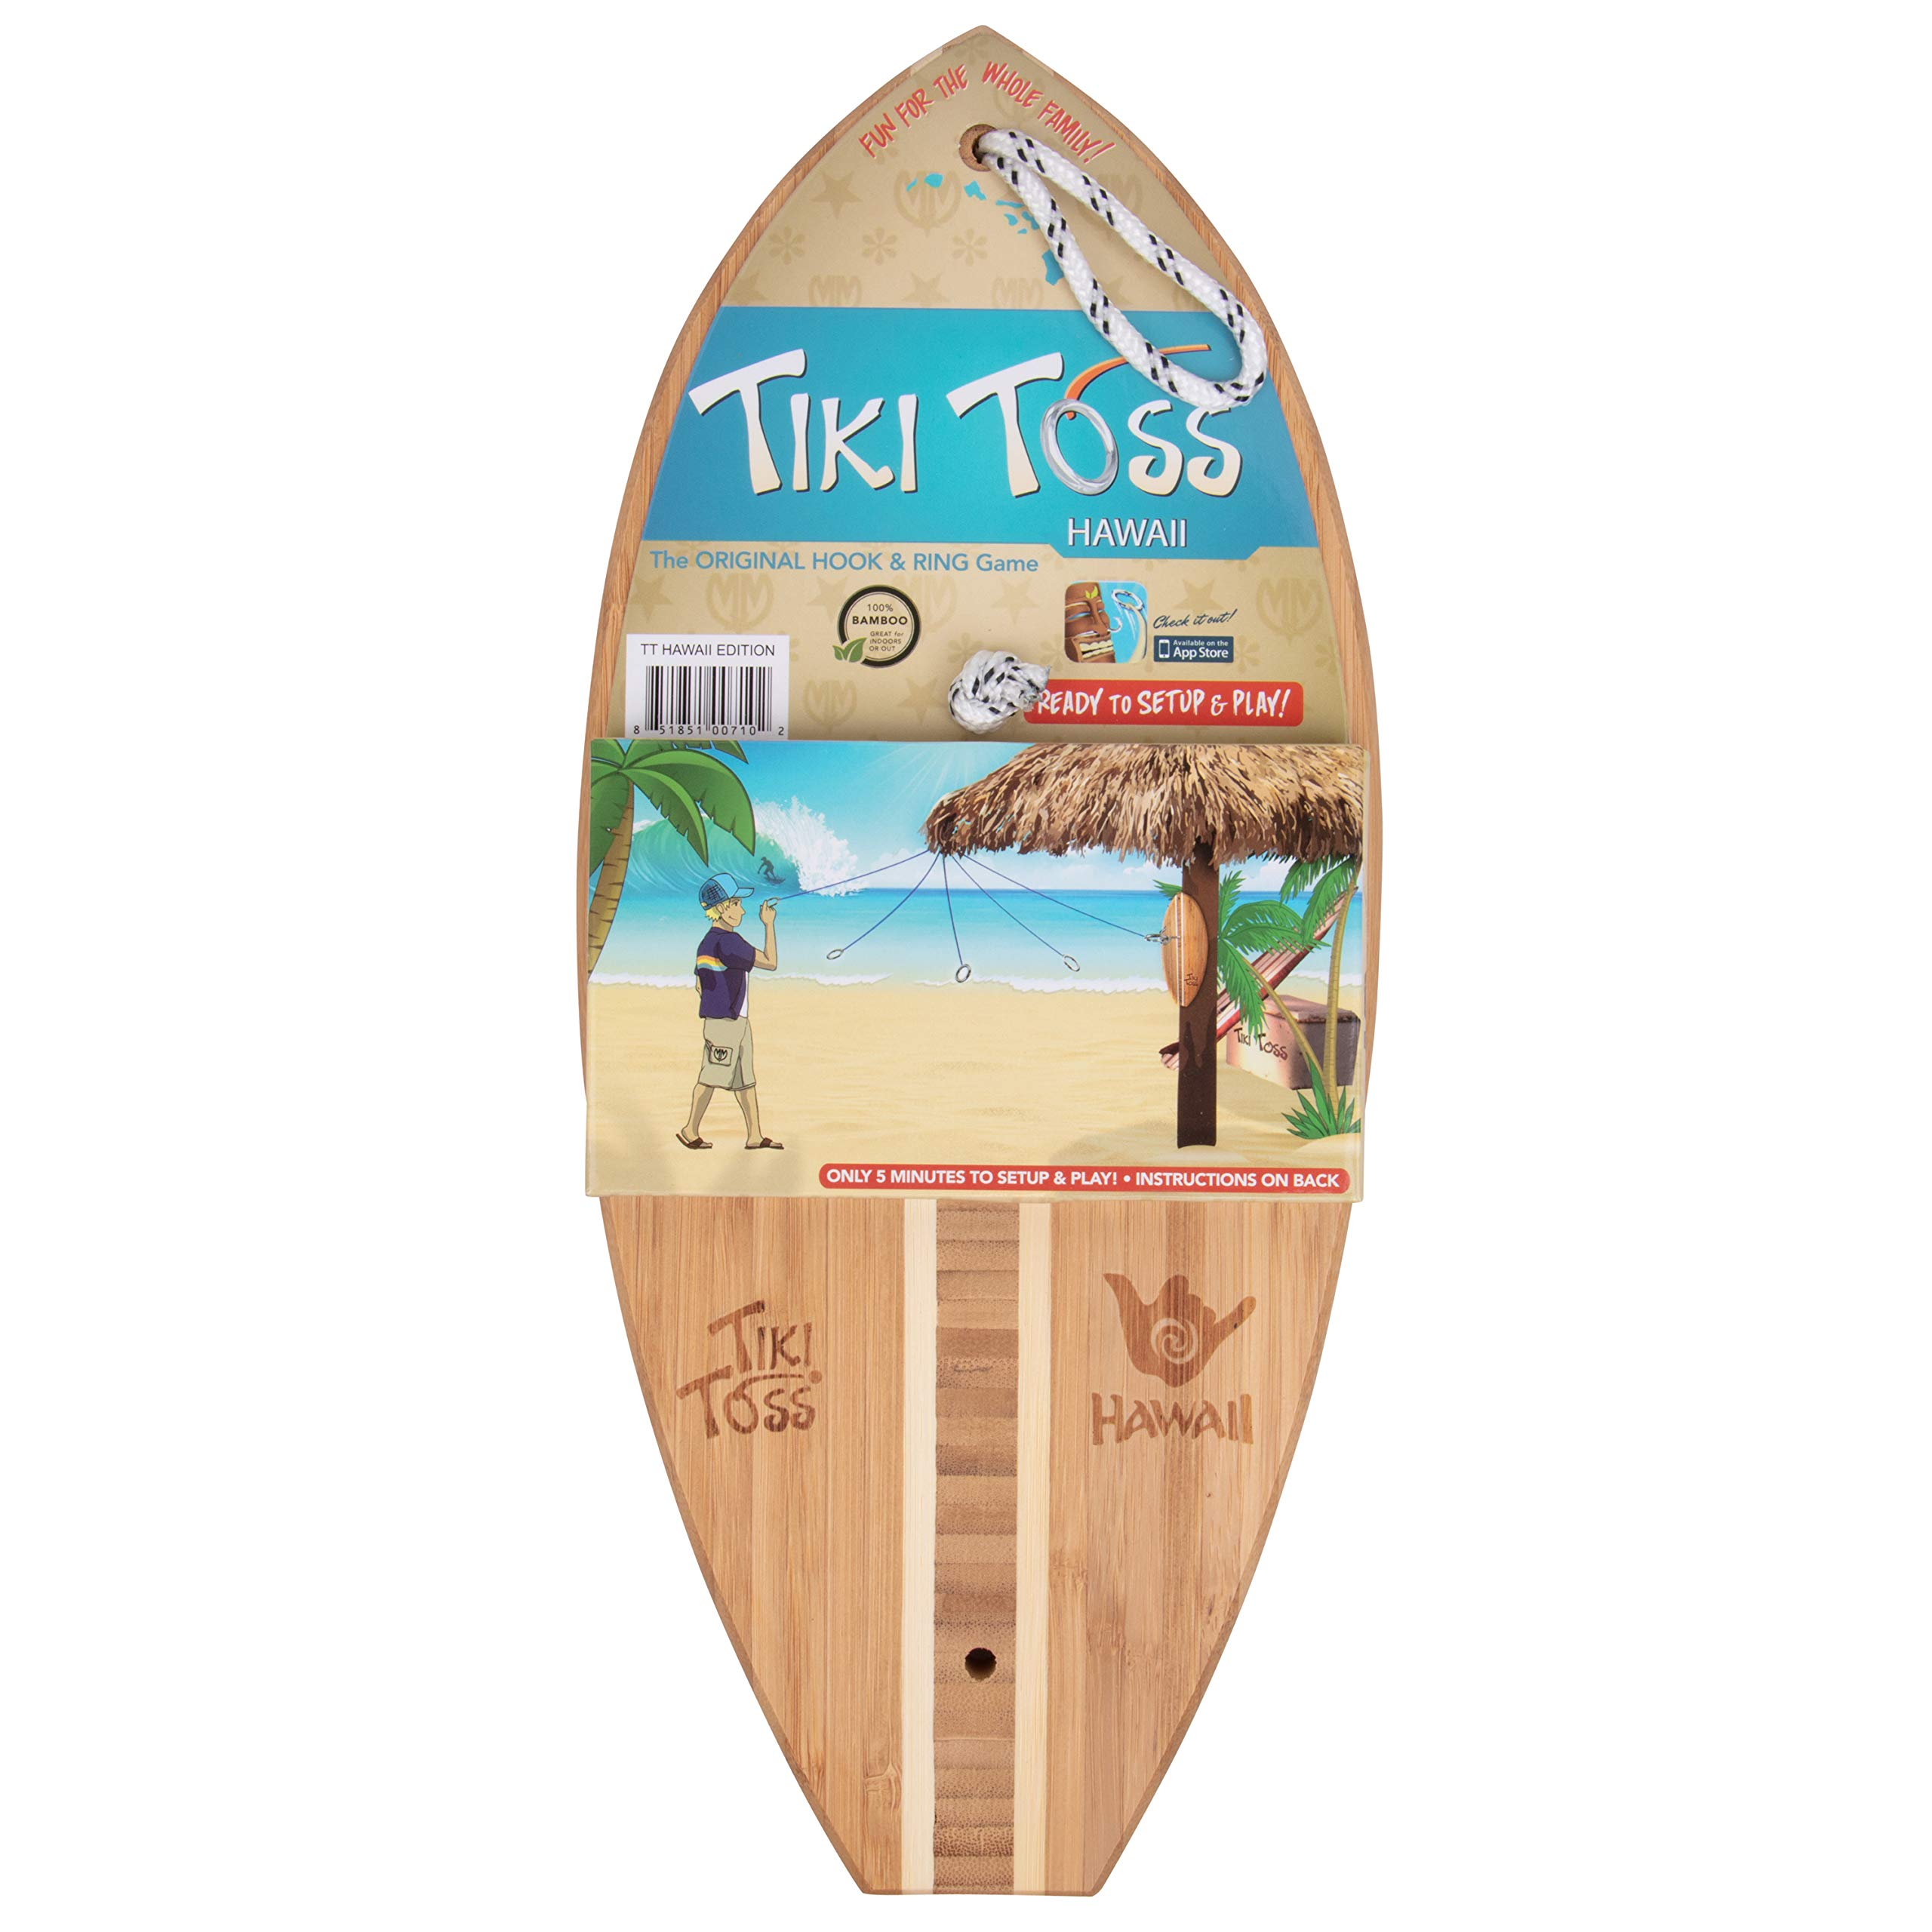 Tiki Toss Hook and Ring Toss Game - 100% Bamboo Only 5 Minutes to Setup - All Parts Included (Hawaiian Edition) Assorted by Tiki Toss (Image #2)